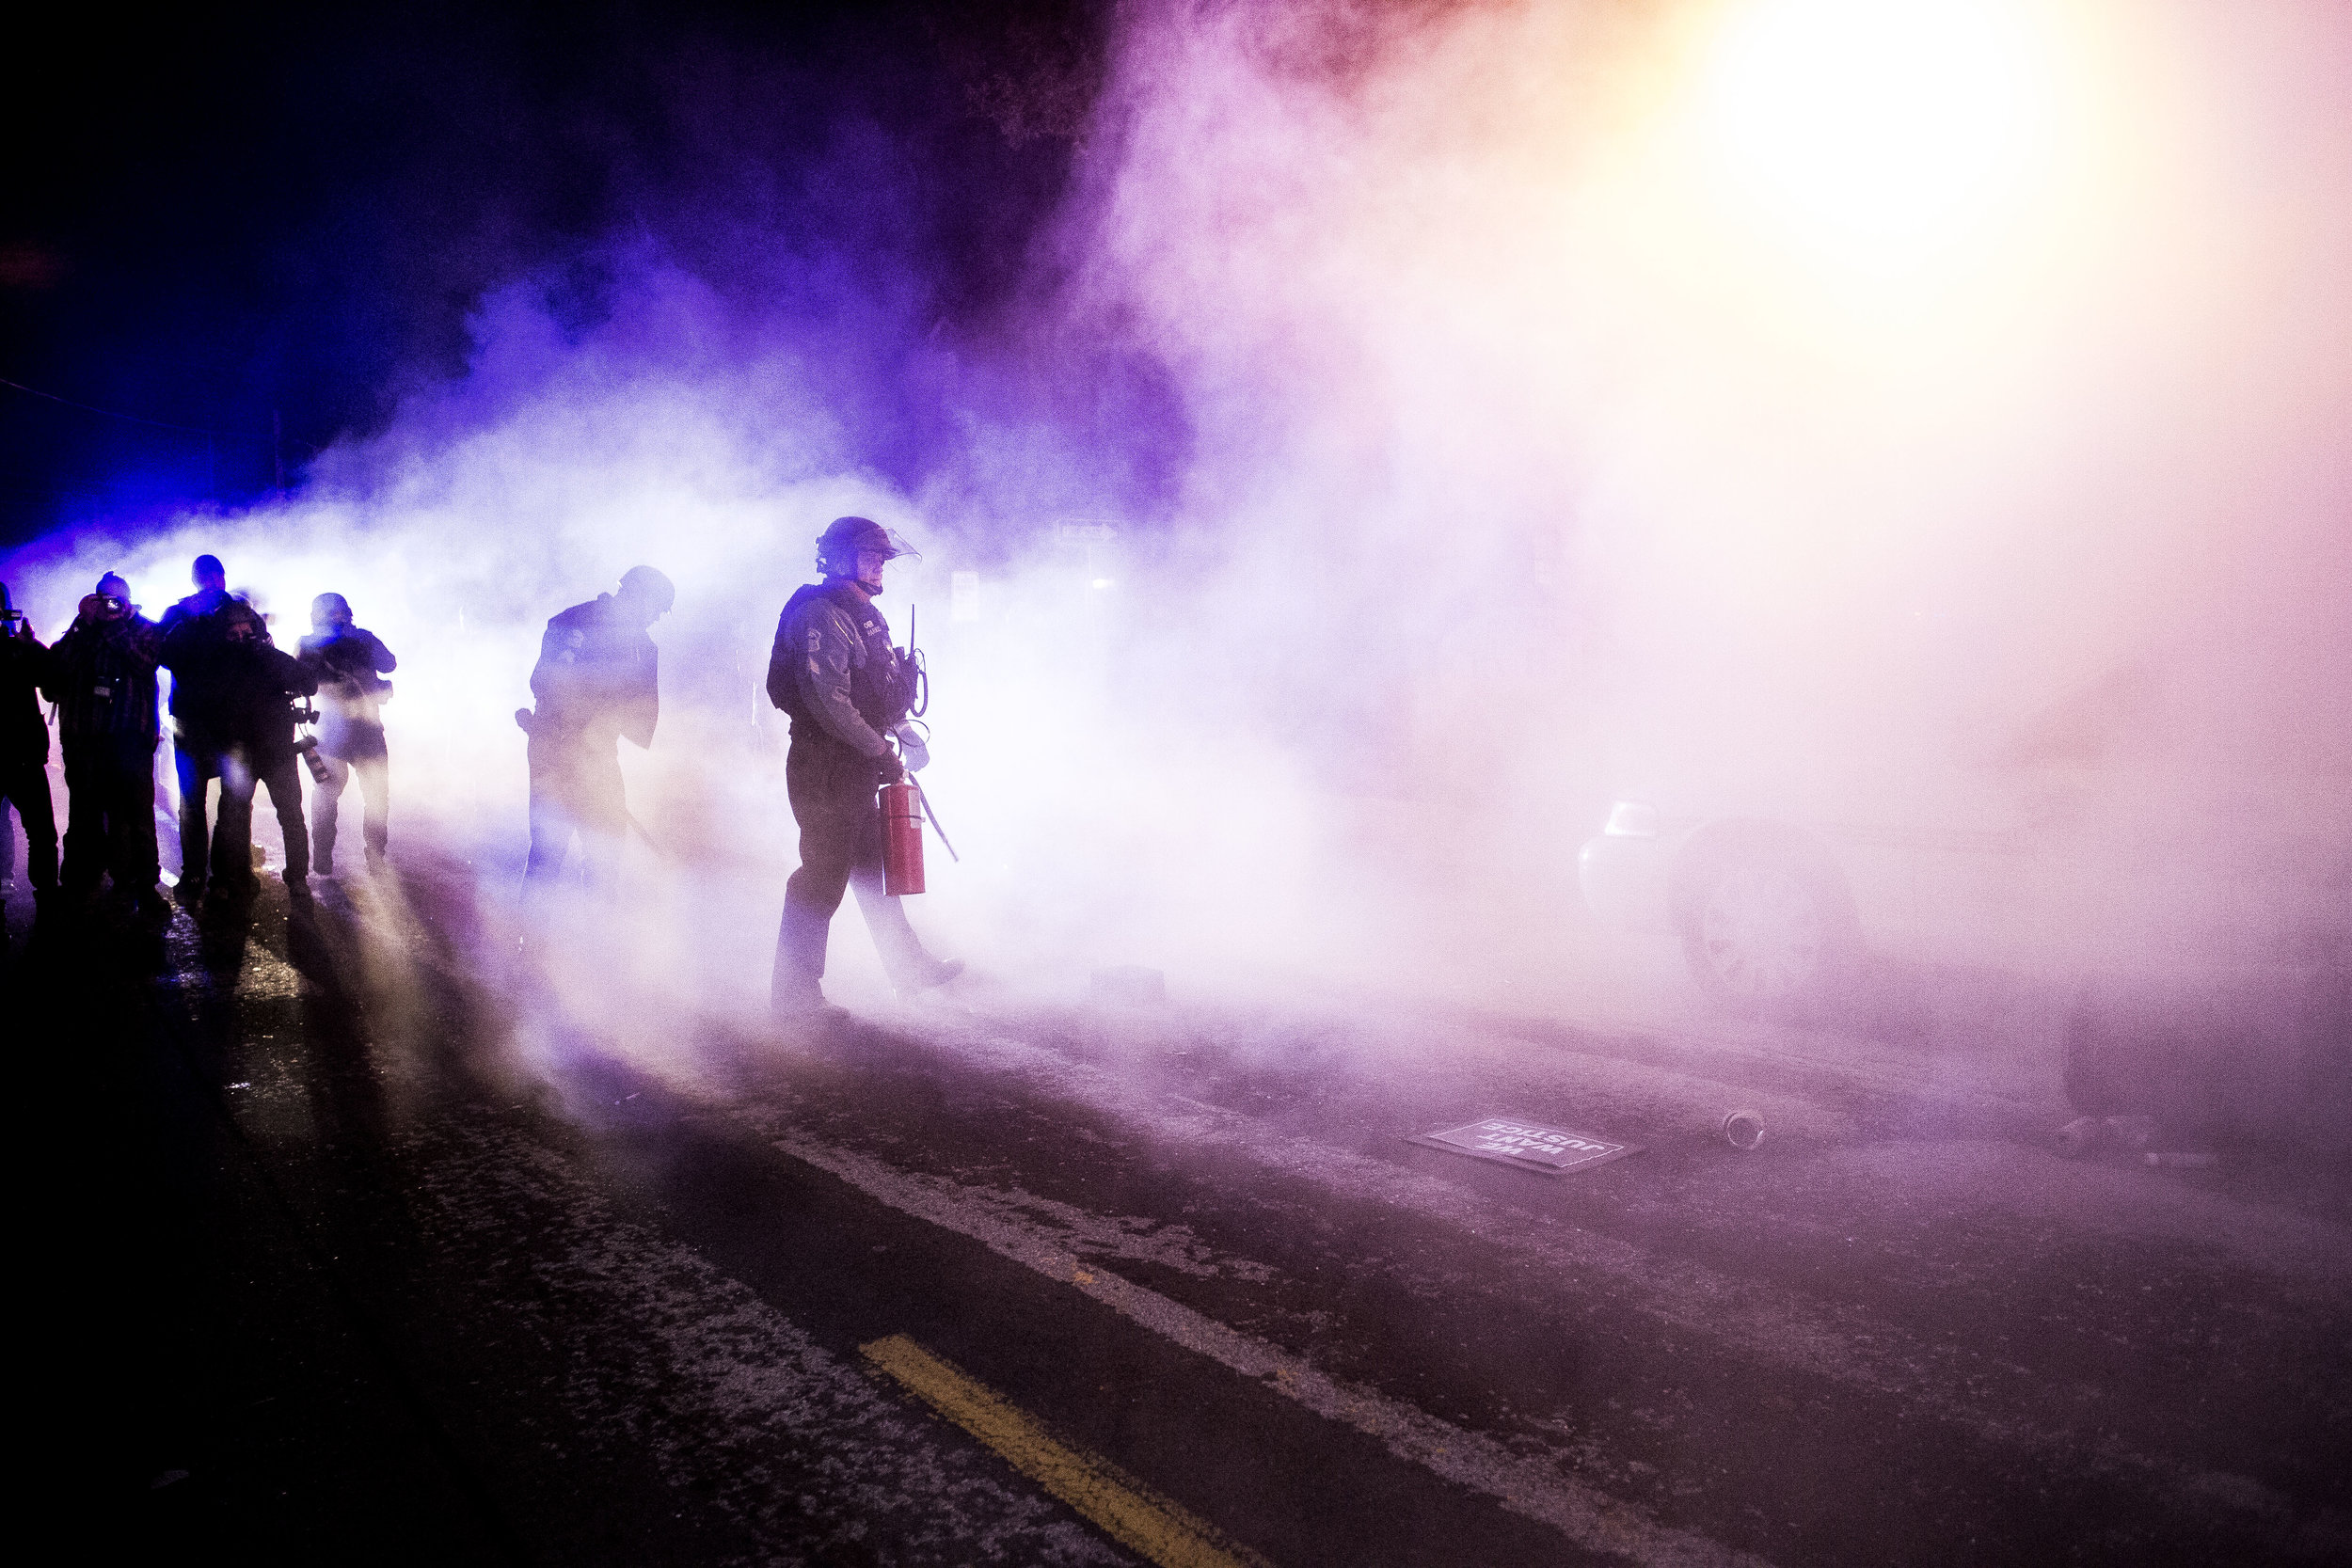 A police official puts out a fire set to a police vehicle outside the Ferguson City Hall on Nov. 25, 2014, in Ferguson, MO.